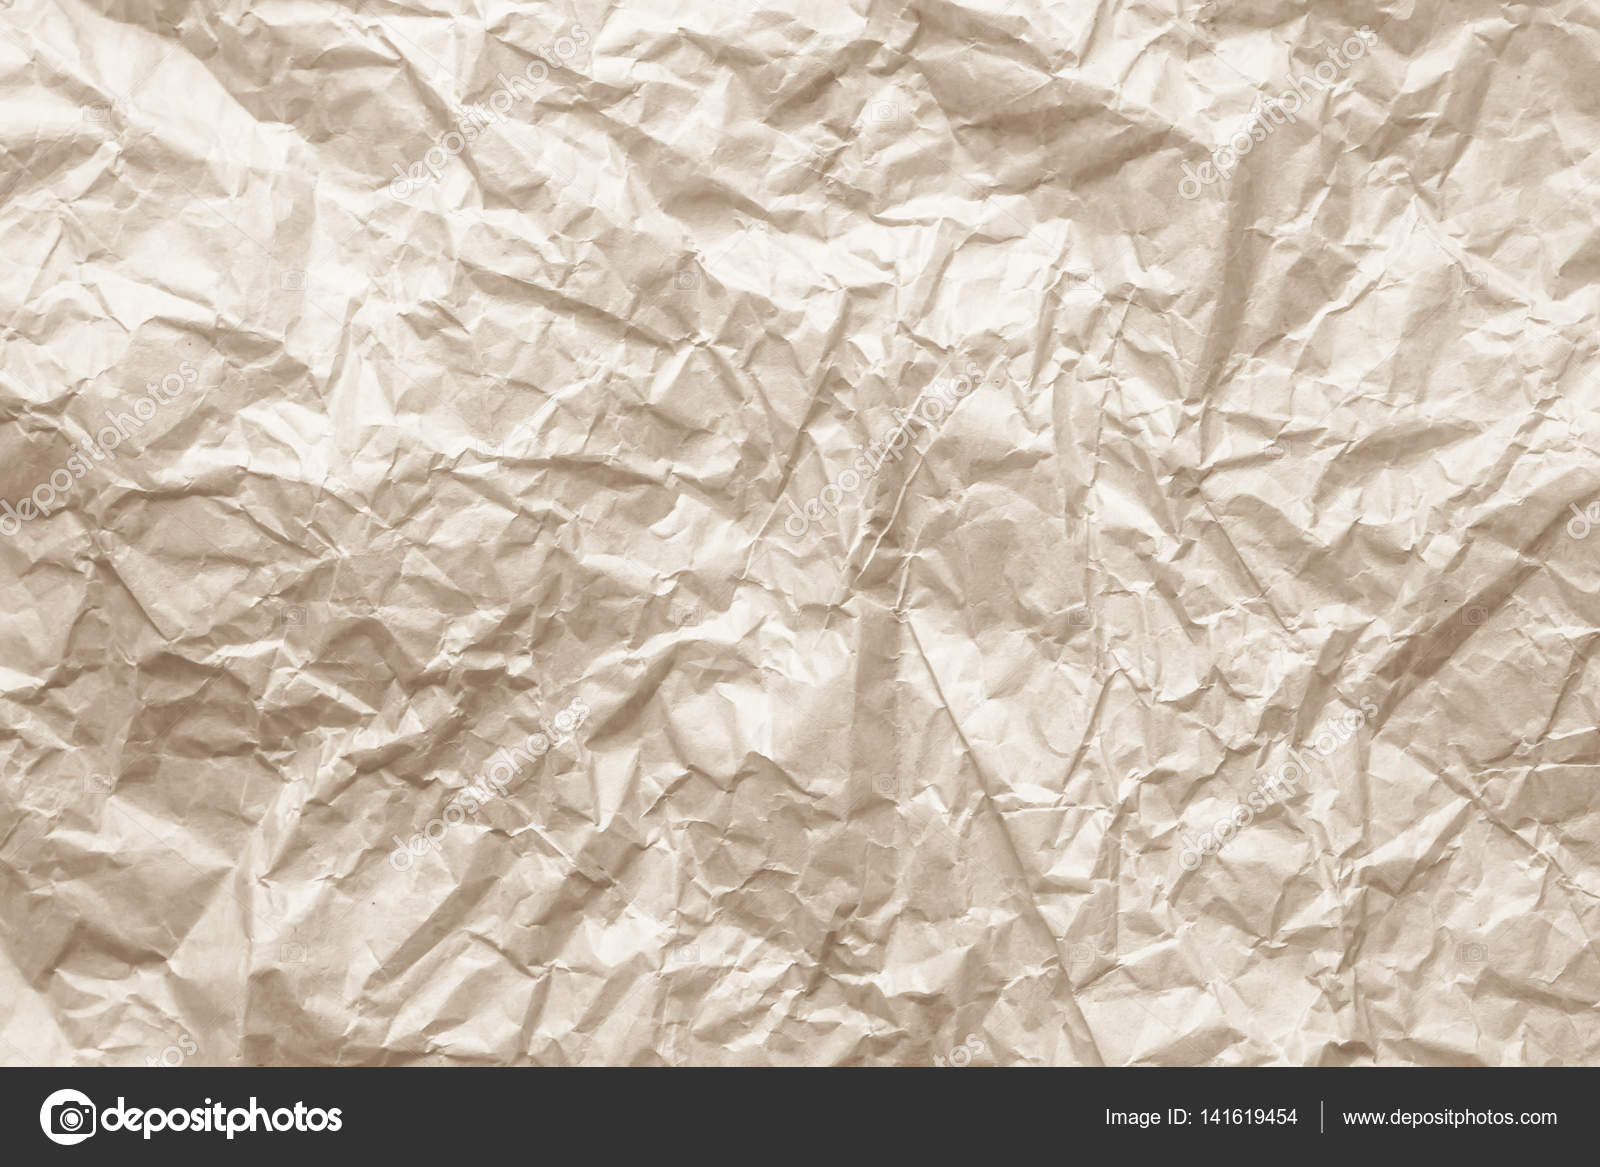 natural recycled paper texture natural decorative recycled art